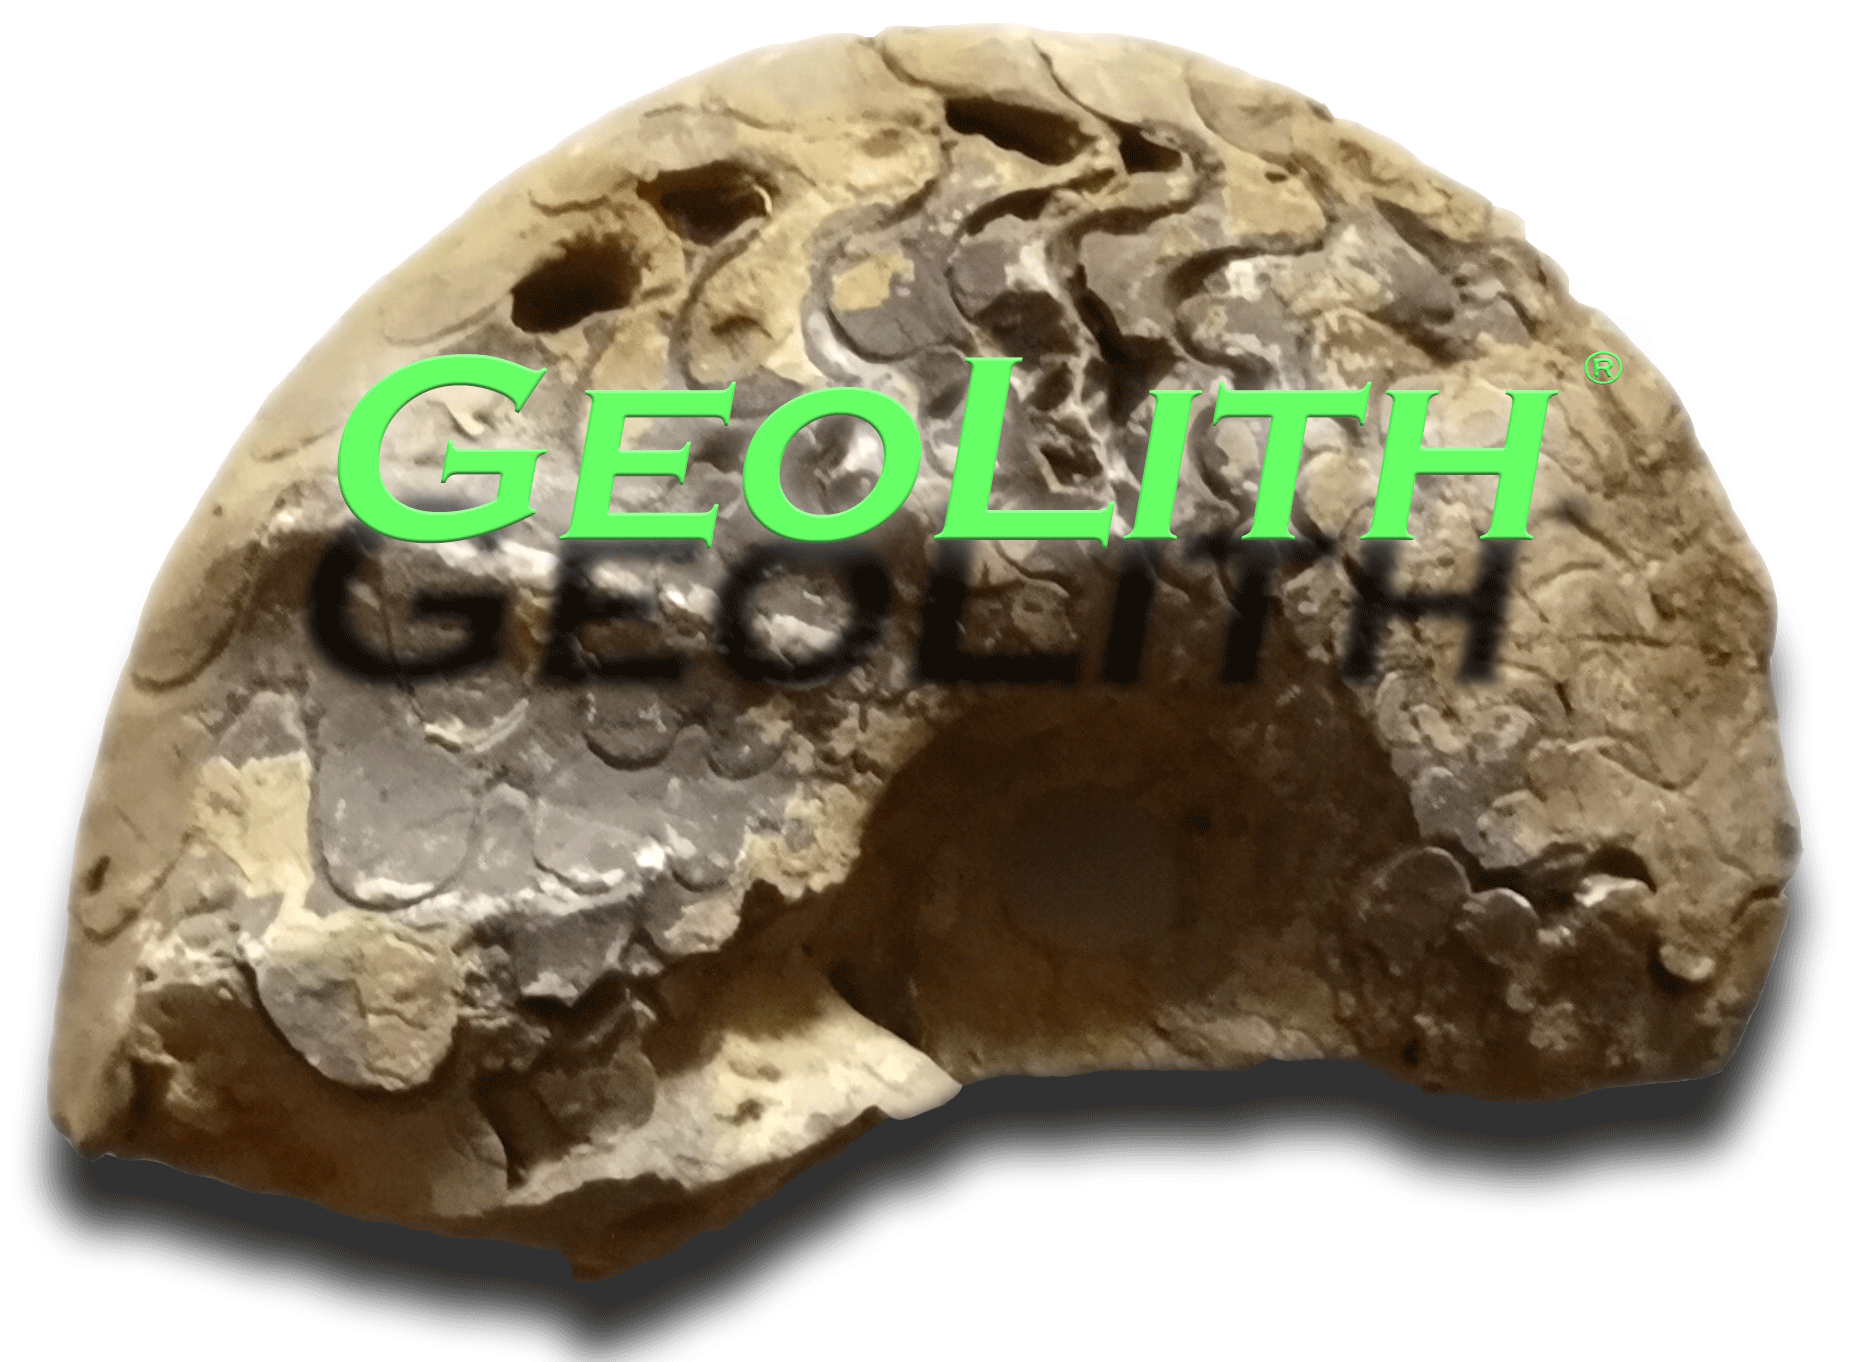 Geolith